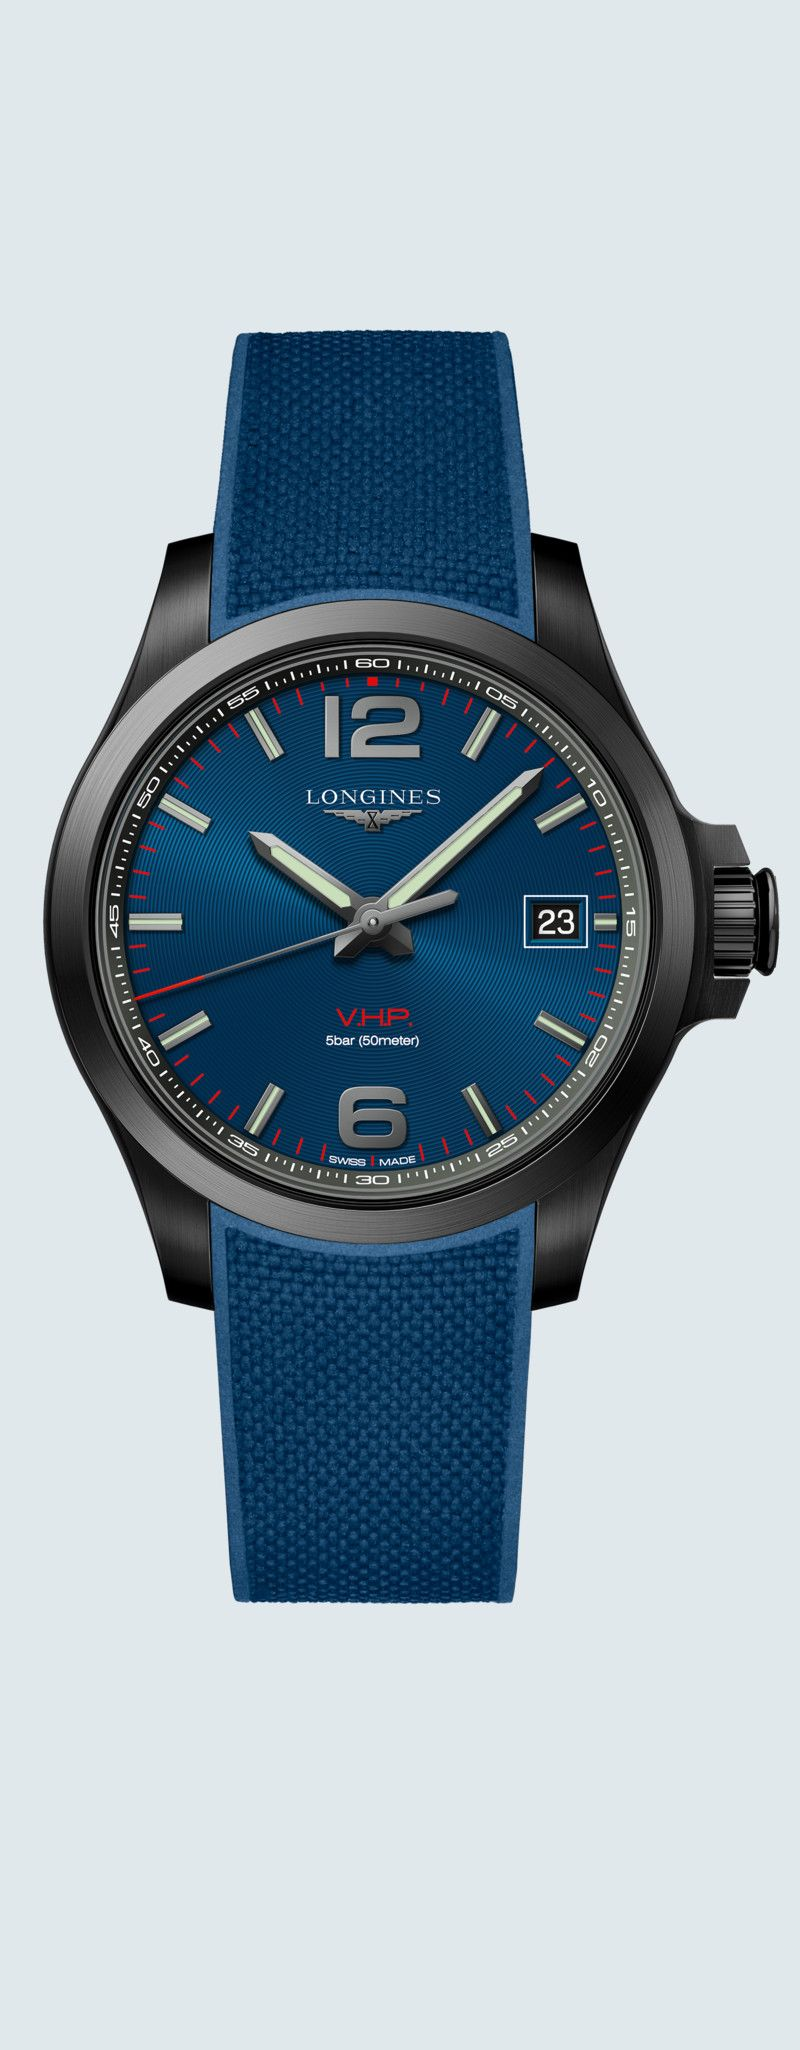 41.00 mm Black PVD coating case with Blue carved dial and Rubber strap Blue strap - case zoom view